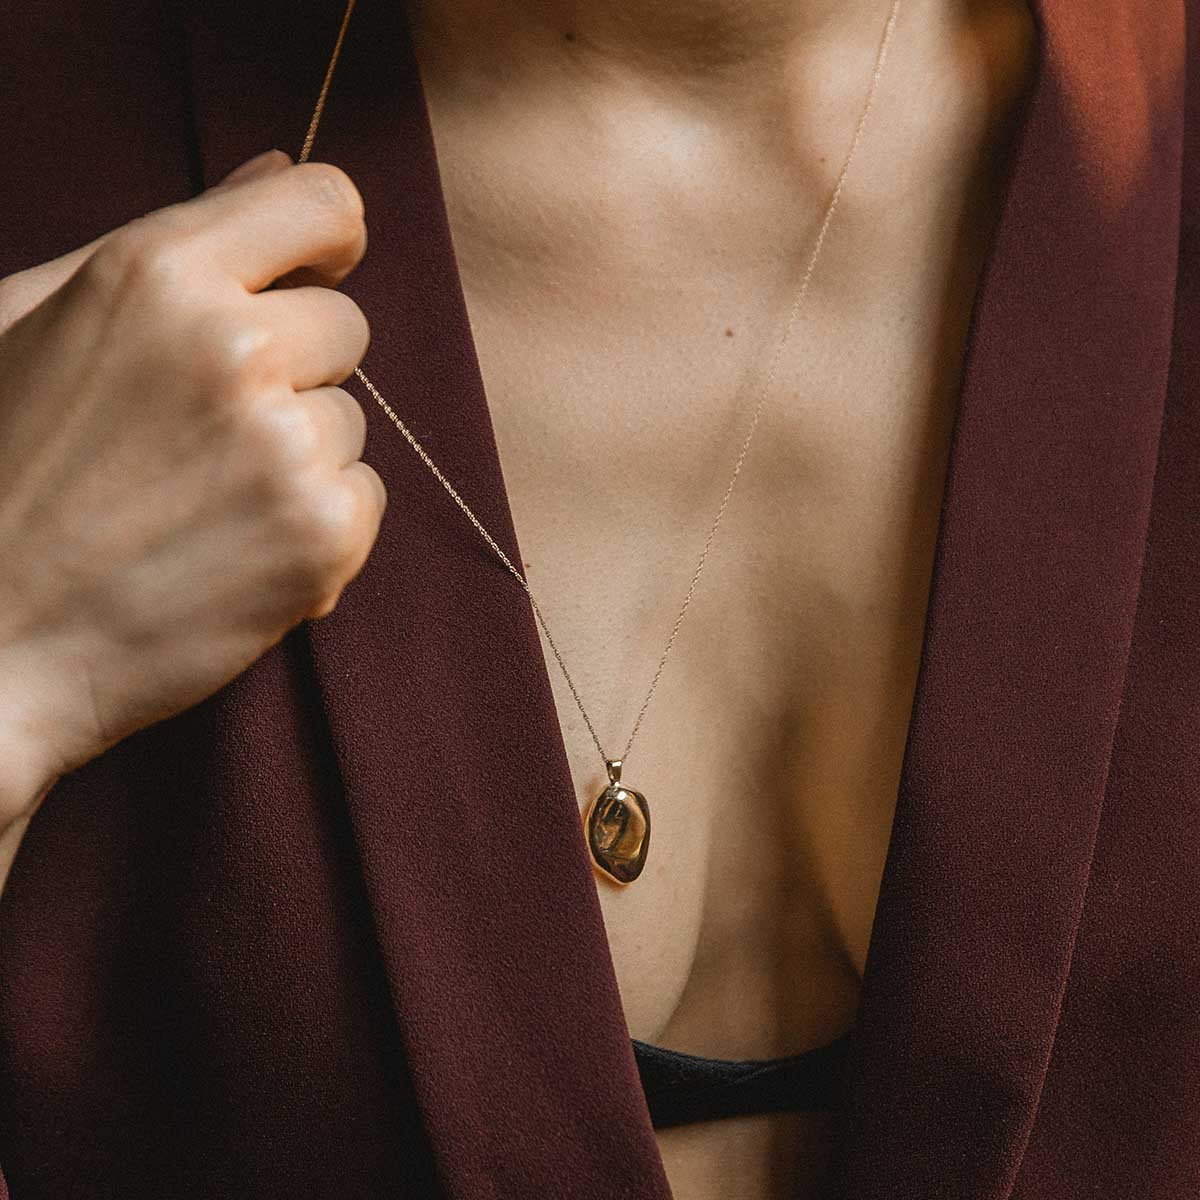 Minimalist Pendant Charm Necklace